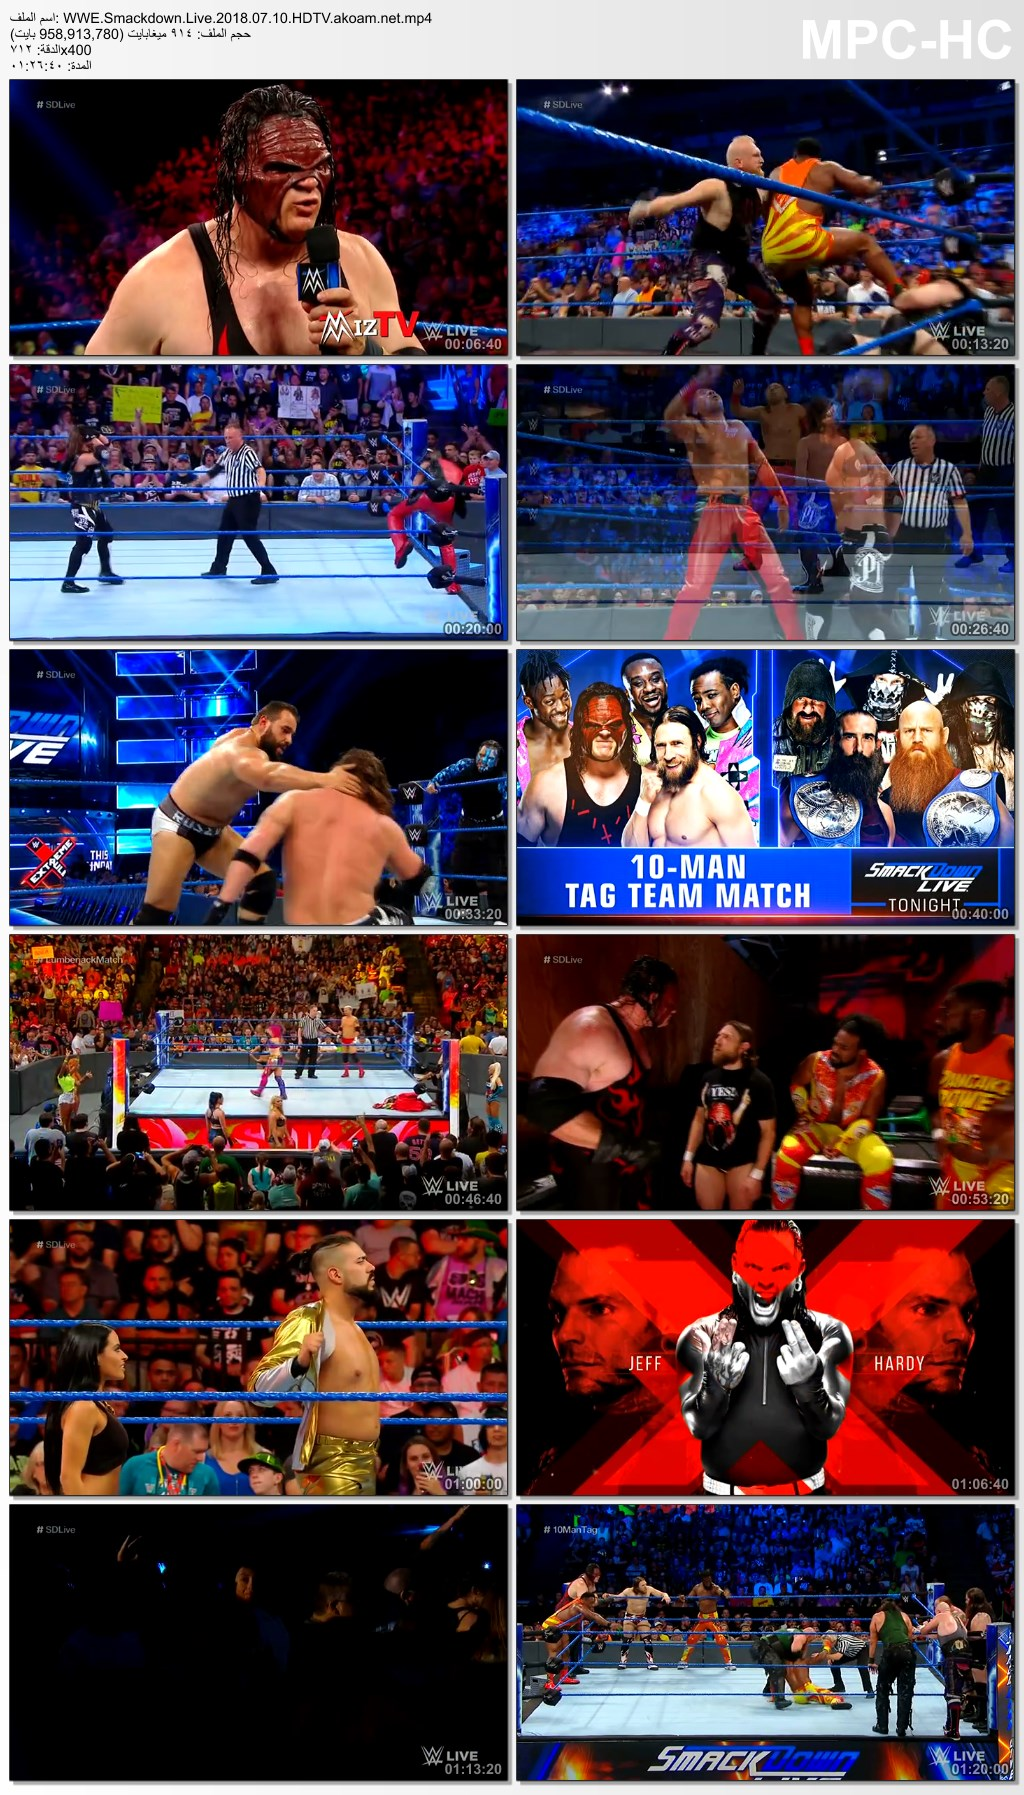 WWE Smackdown 2018,WWE,Smackdown